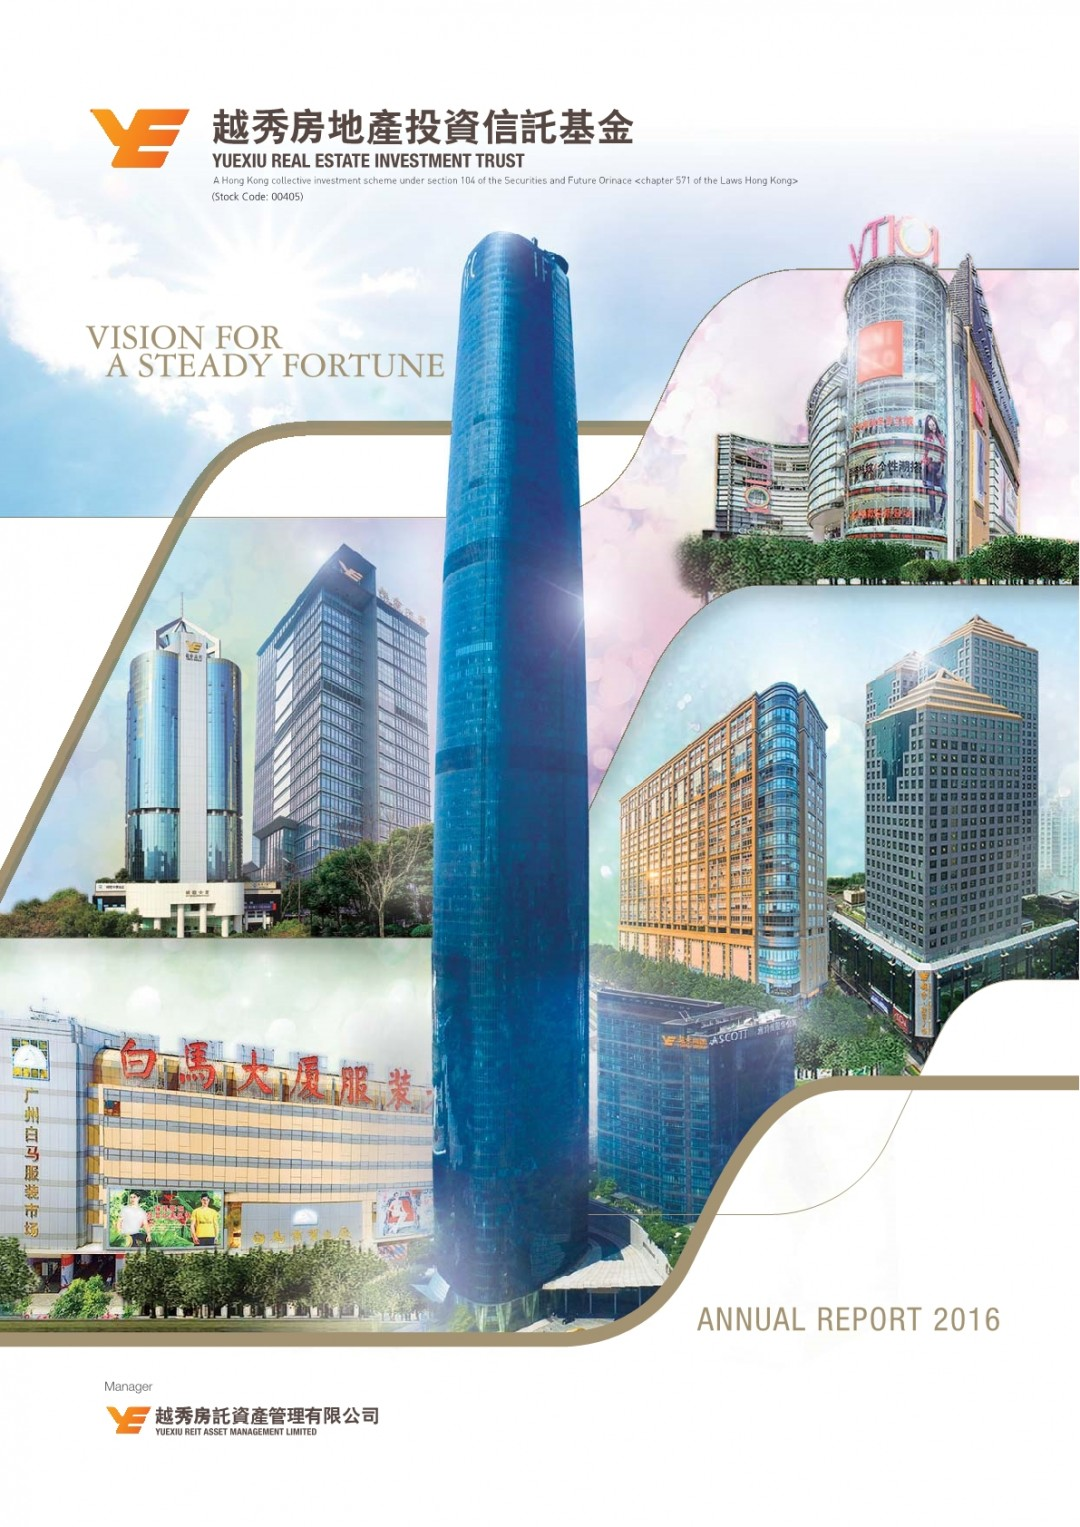 Yuexiu Real Estate Investment Trust